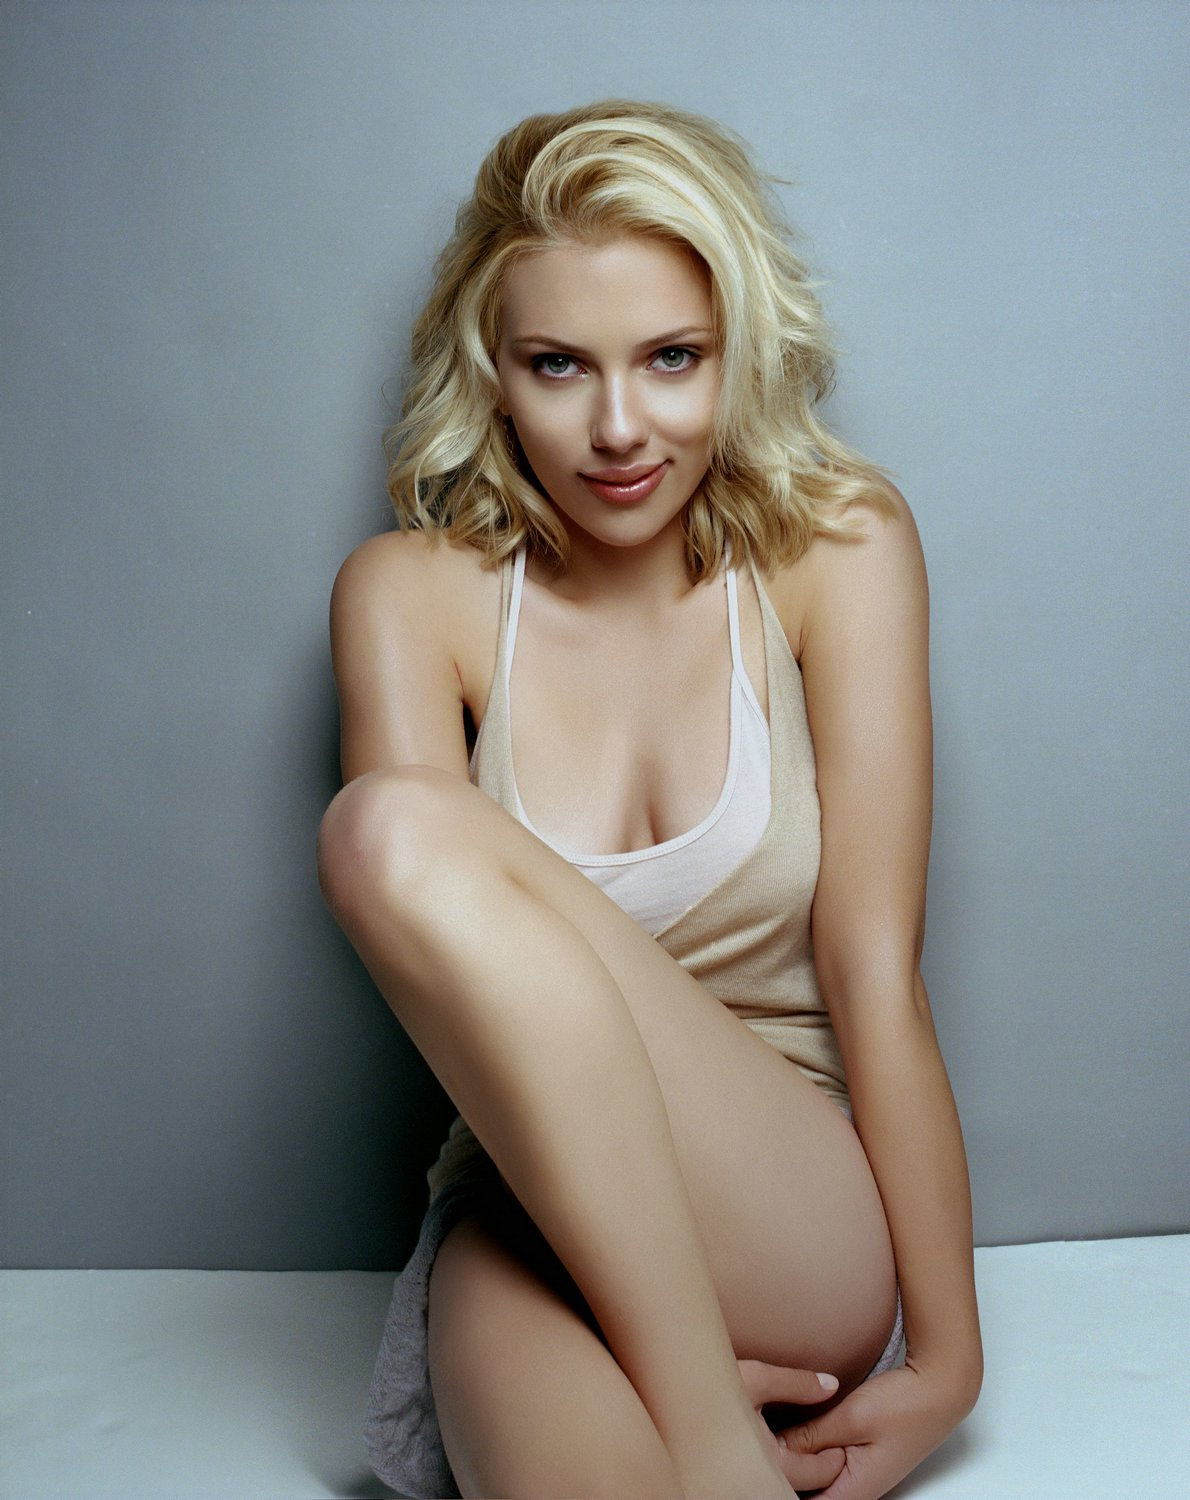 Scarlett-Johansson-hot-spicy-cleavage